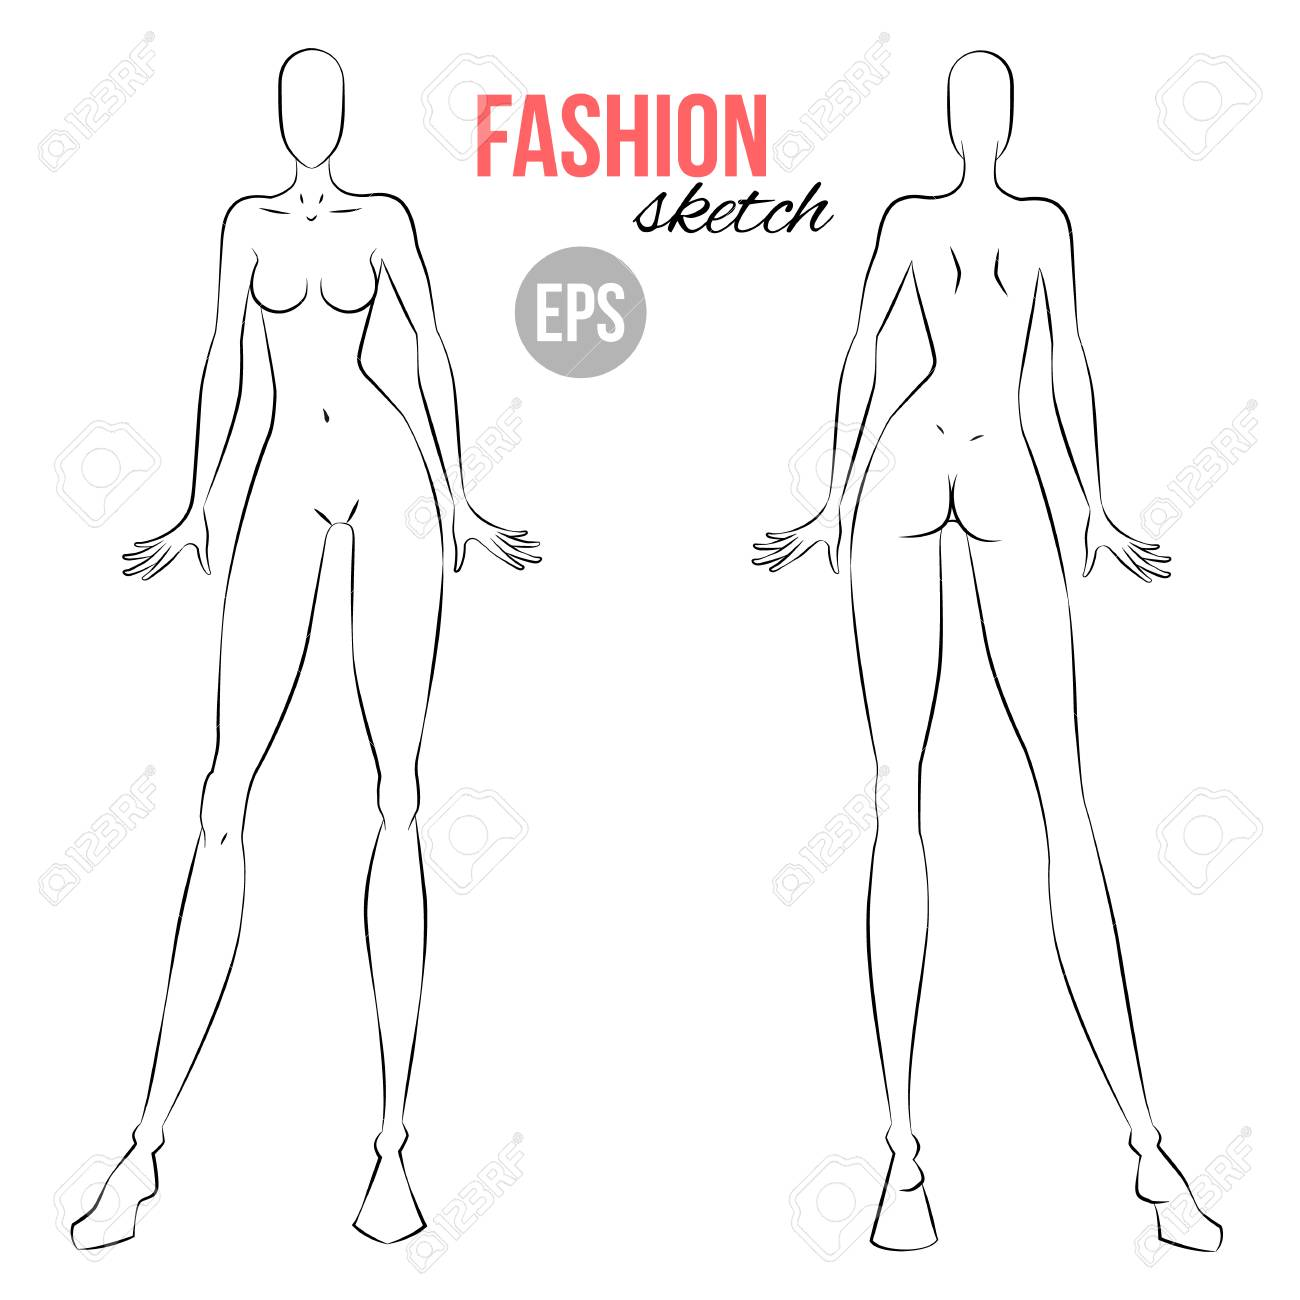 Vector Outline Girl Model Template For Fashion Sketching Illustration Royalty Free Cliparts Vectors And Stock Illustration Image 94895521